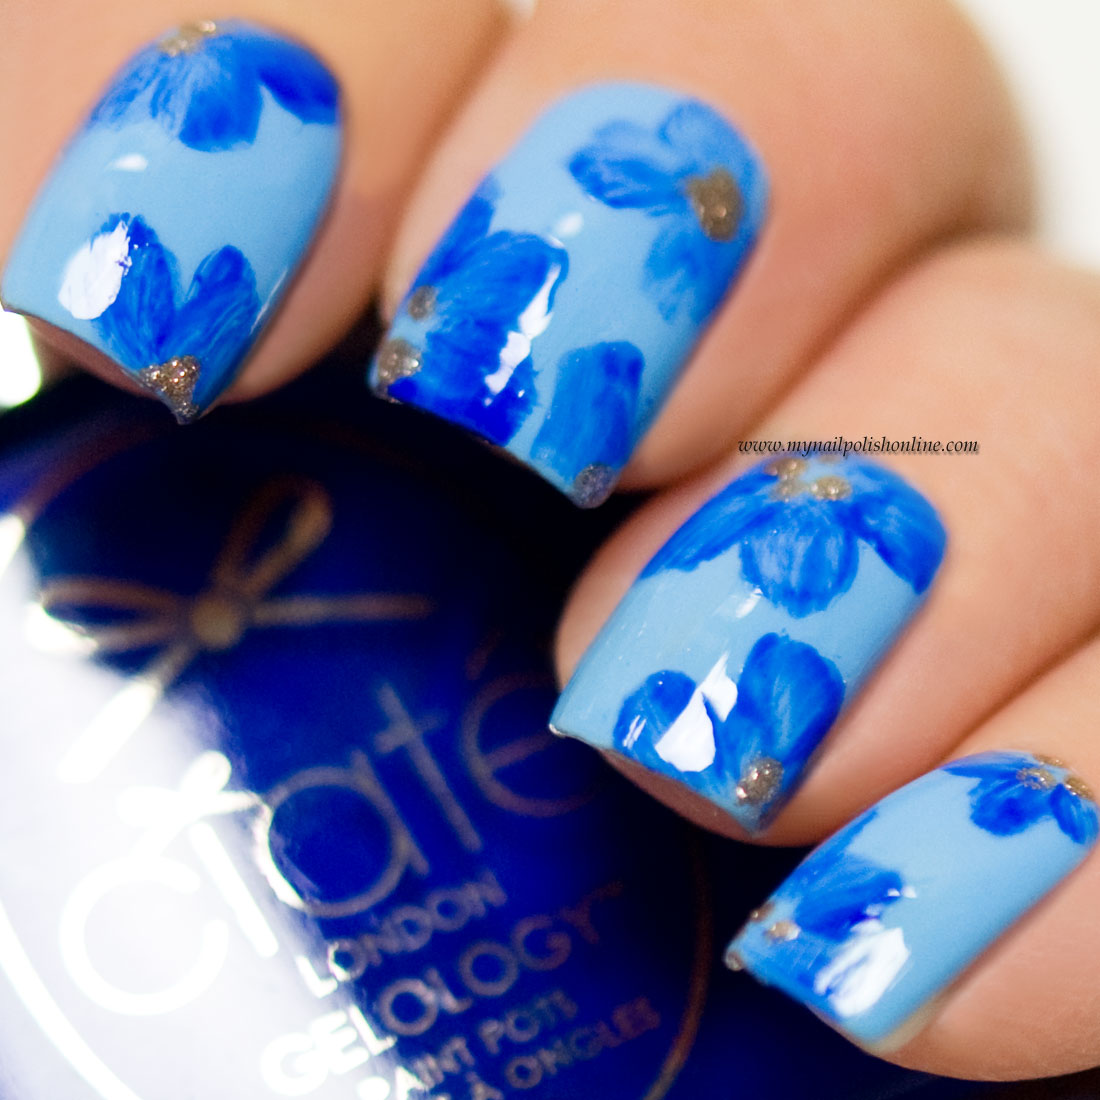 Floral nails -  Blue on blue